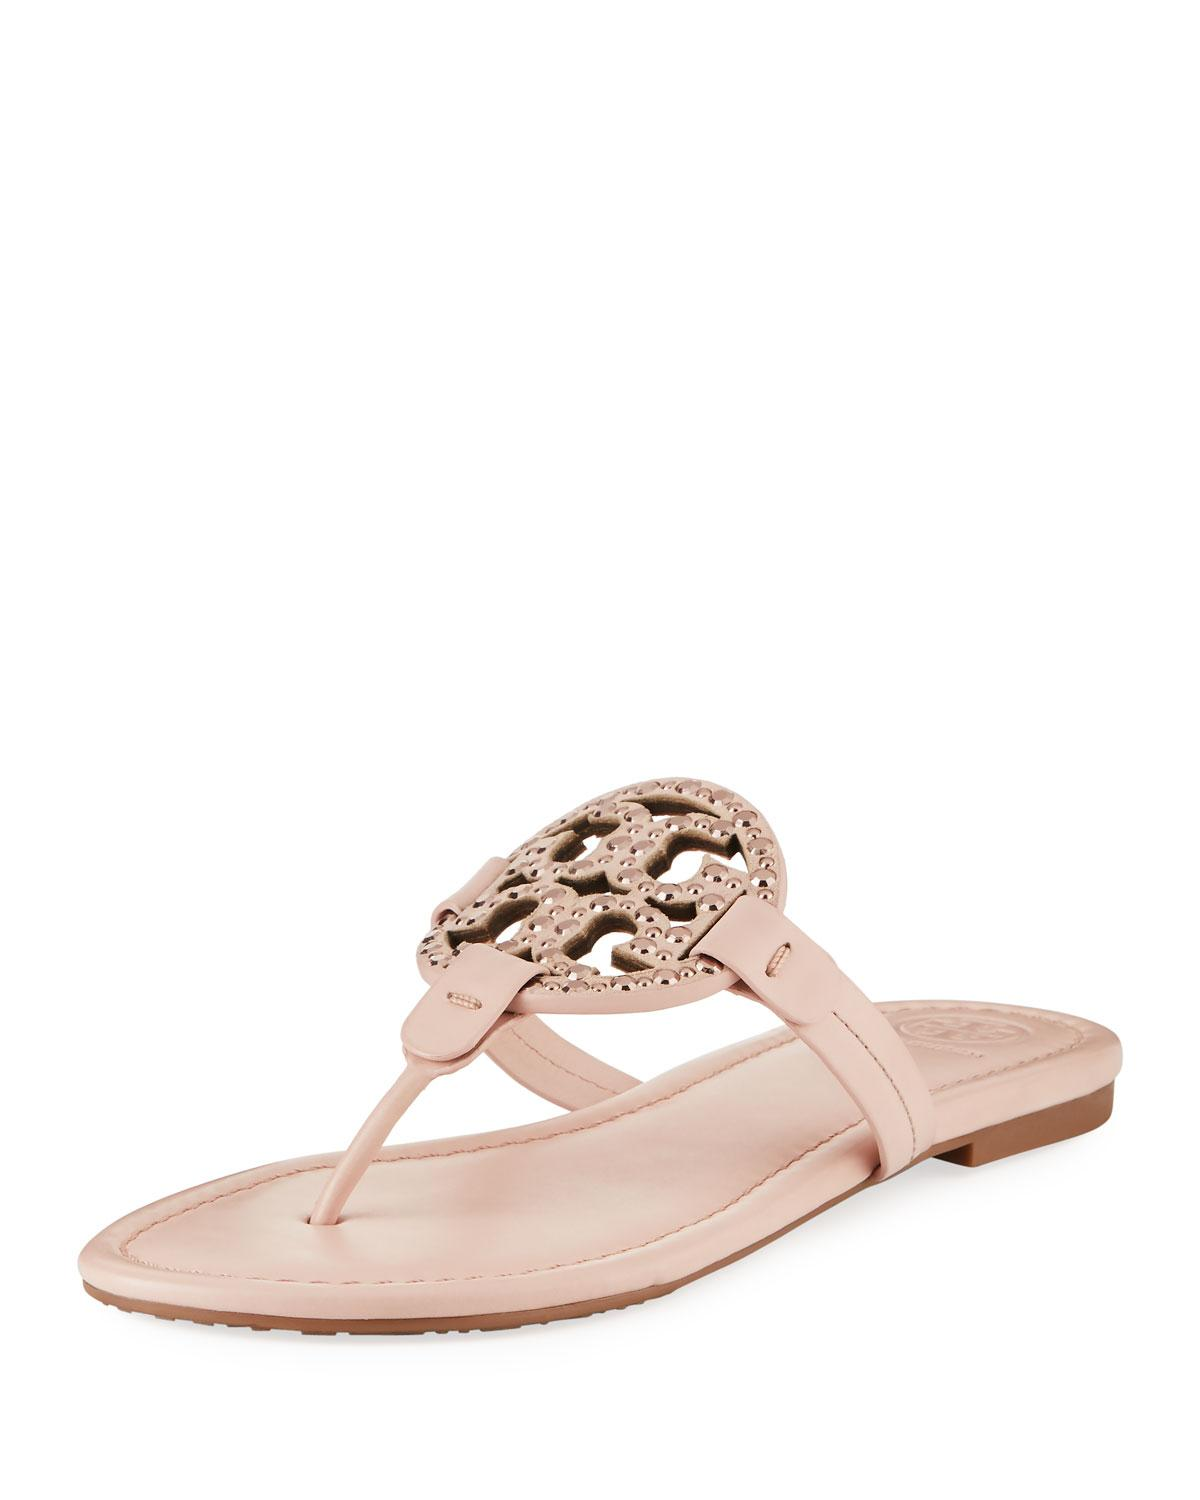 f355ec4cf Tory Burch Miller Medallion Embellished Flat Sandal In Sea Shell Pink